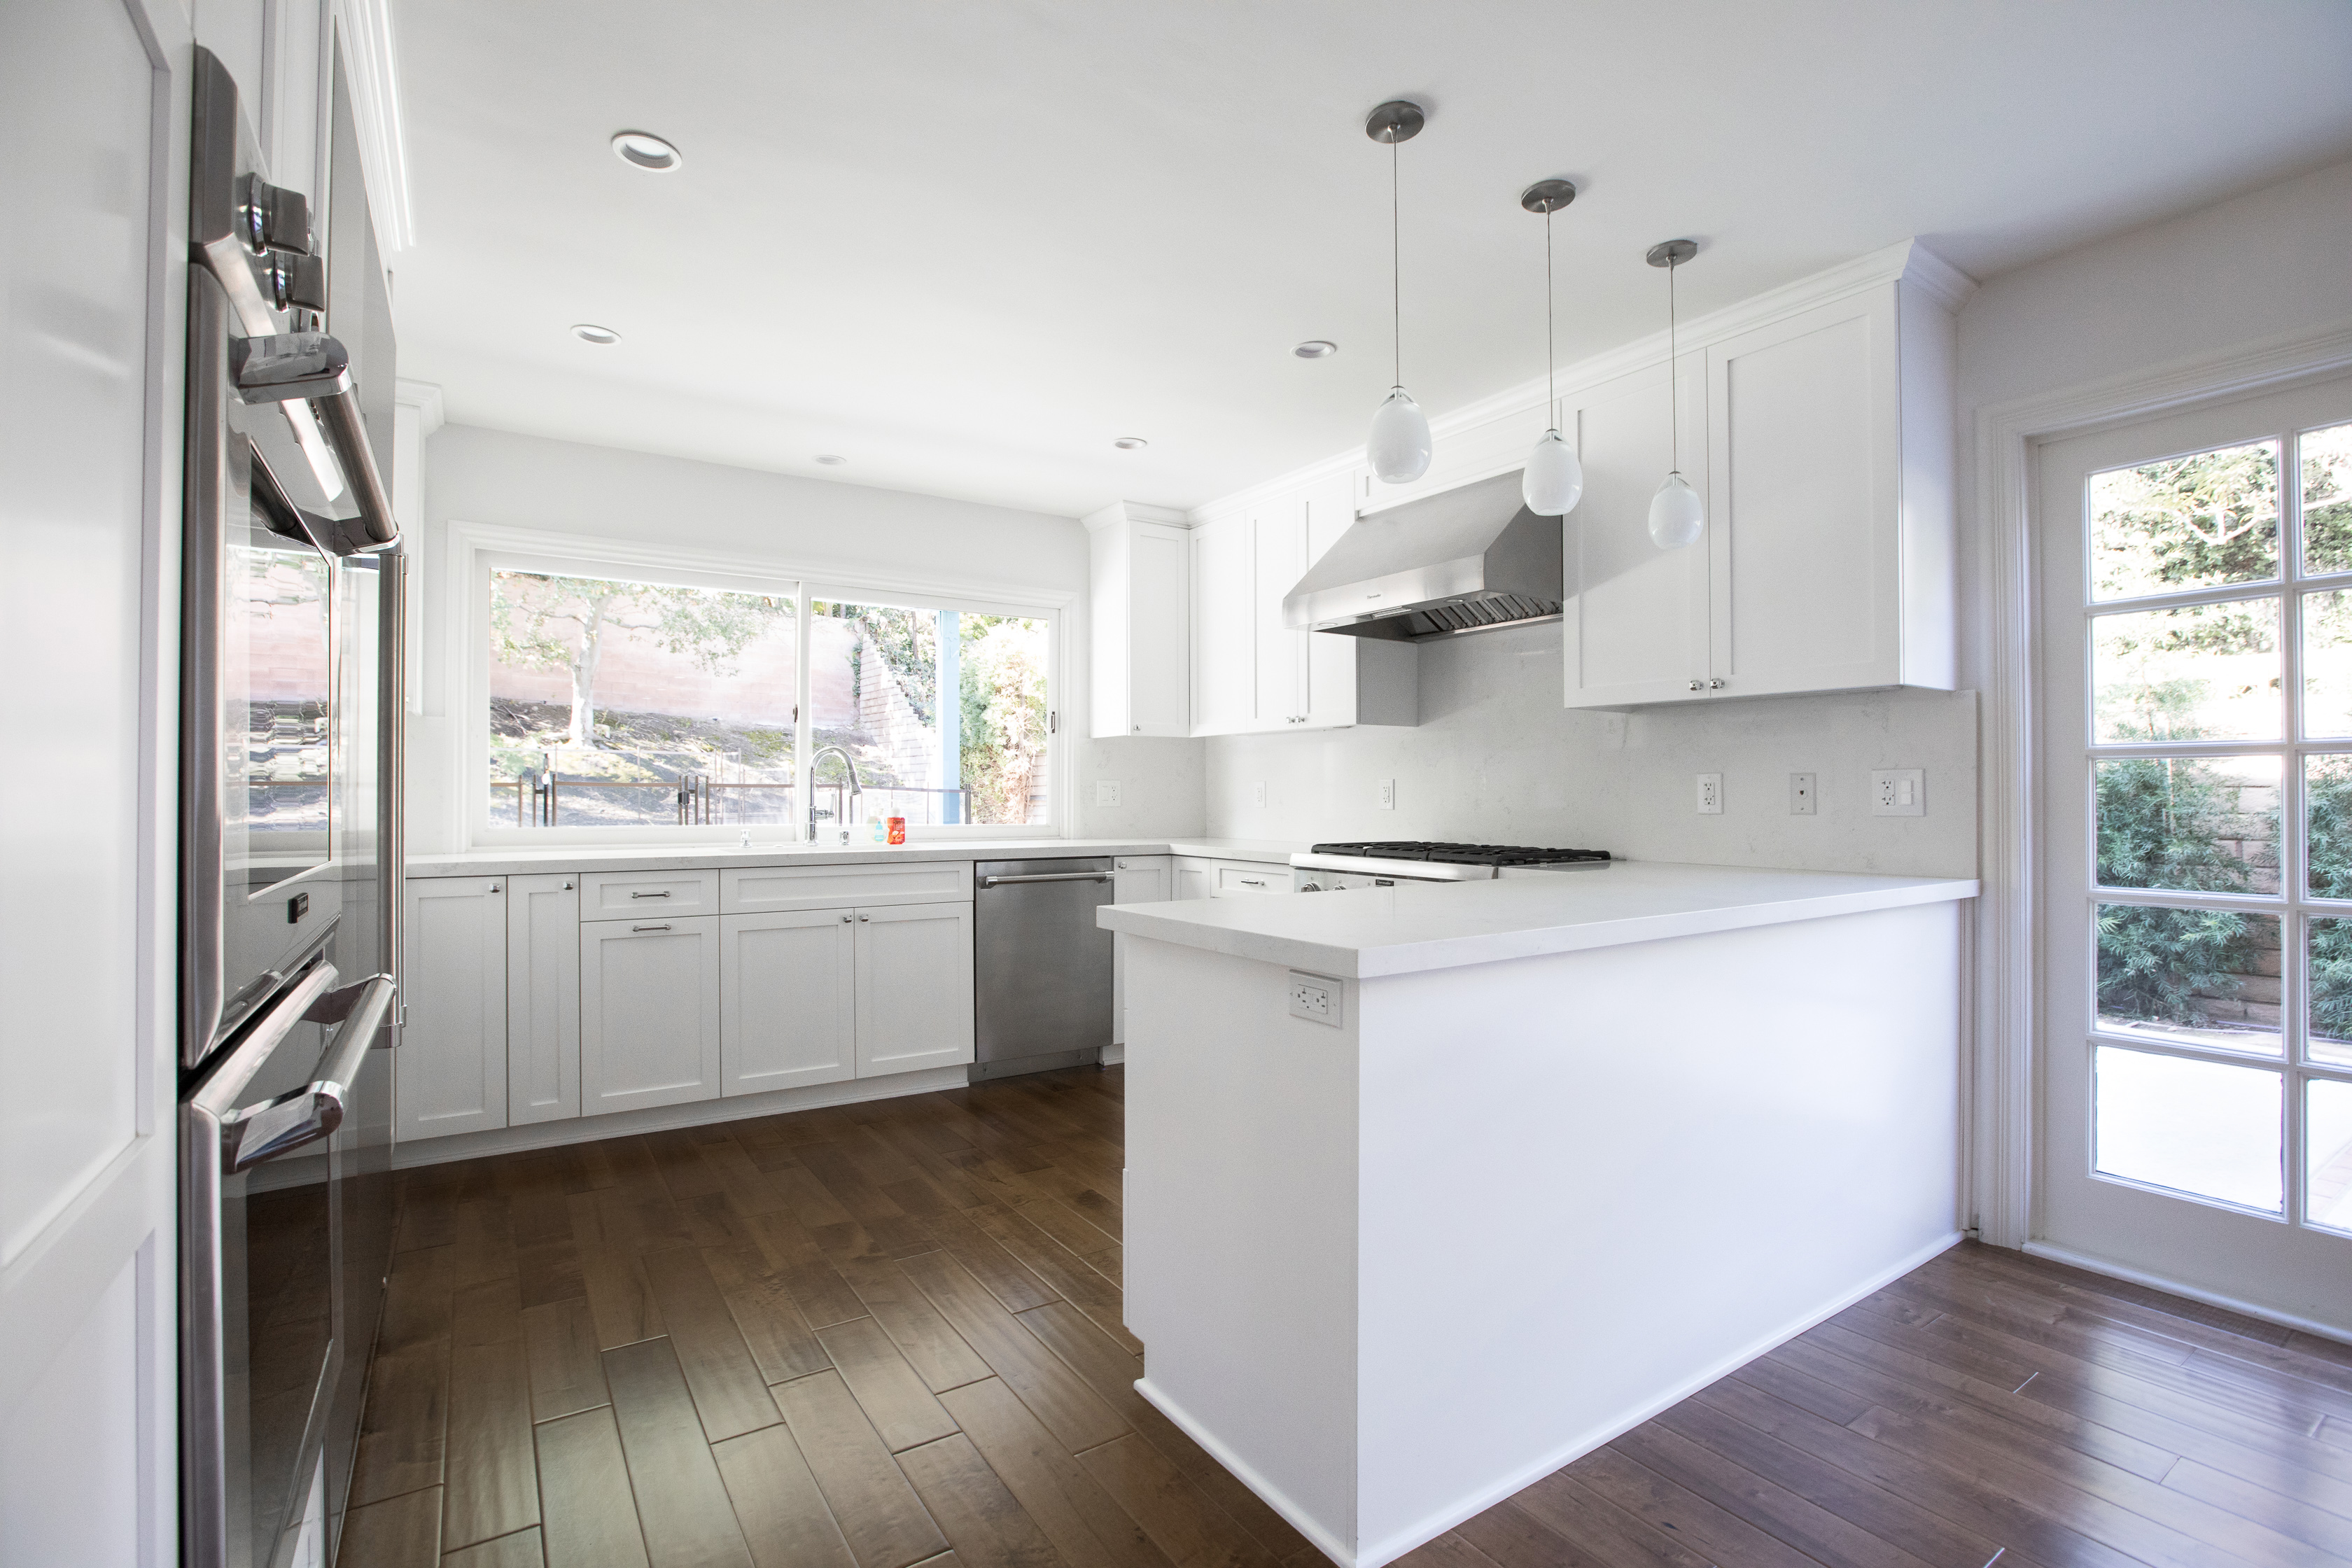 Kitchen Remodel with White Shaker and Marble Backsplash in Los Angeles